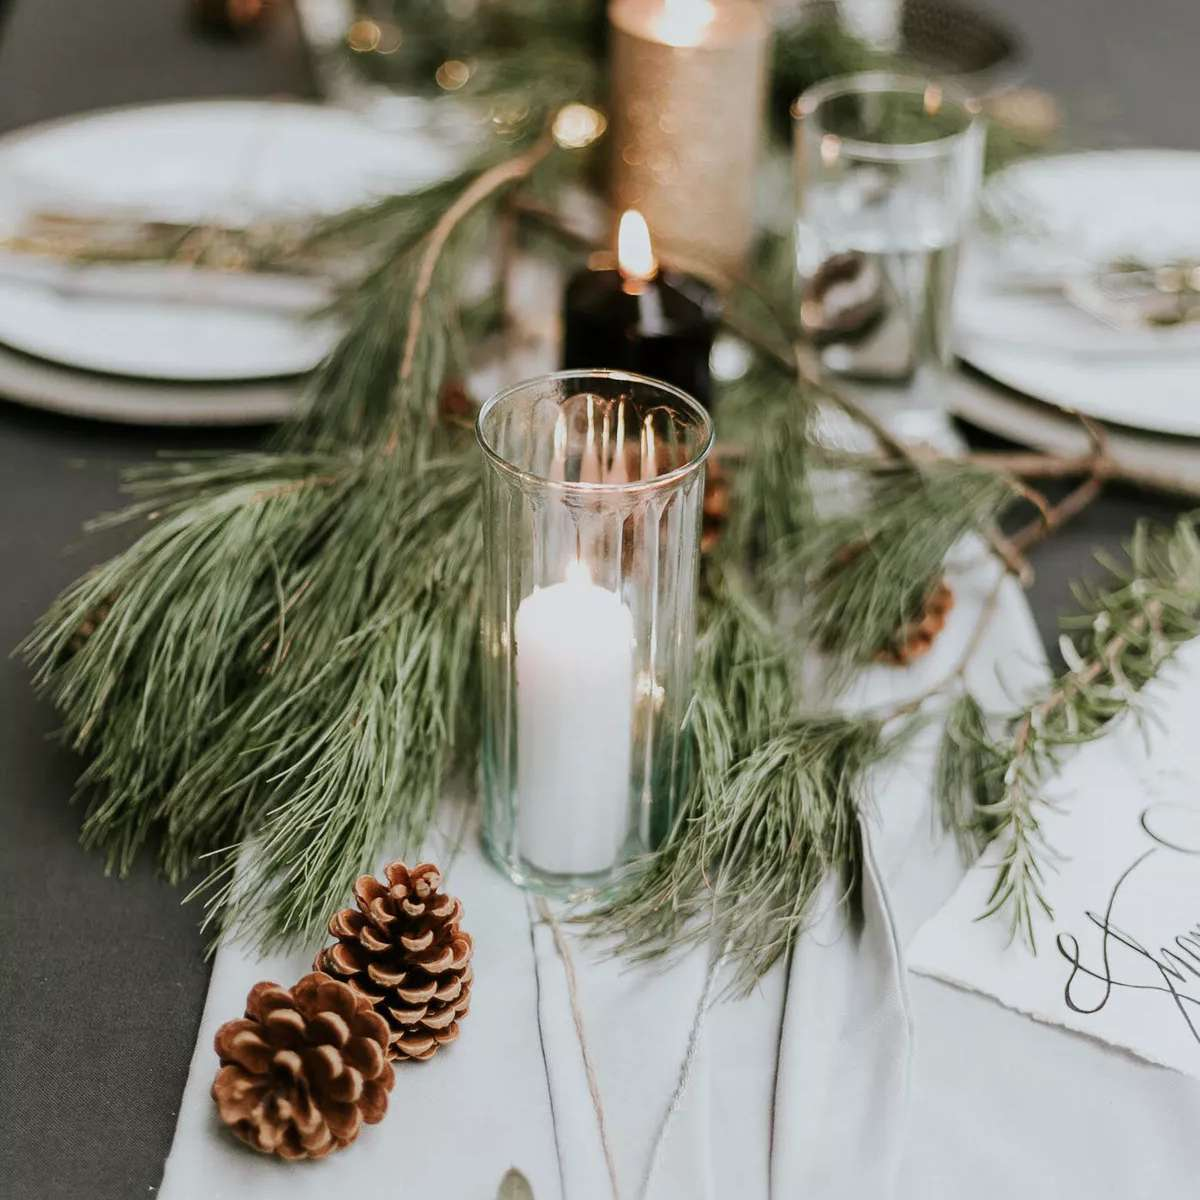 Table decor featuring greenery, candles, and pine cones